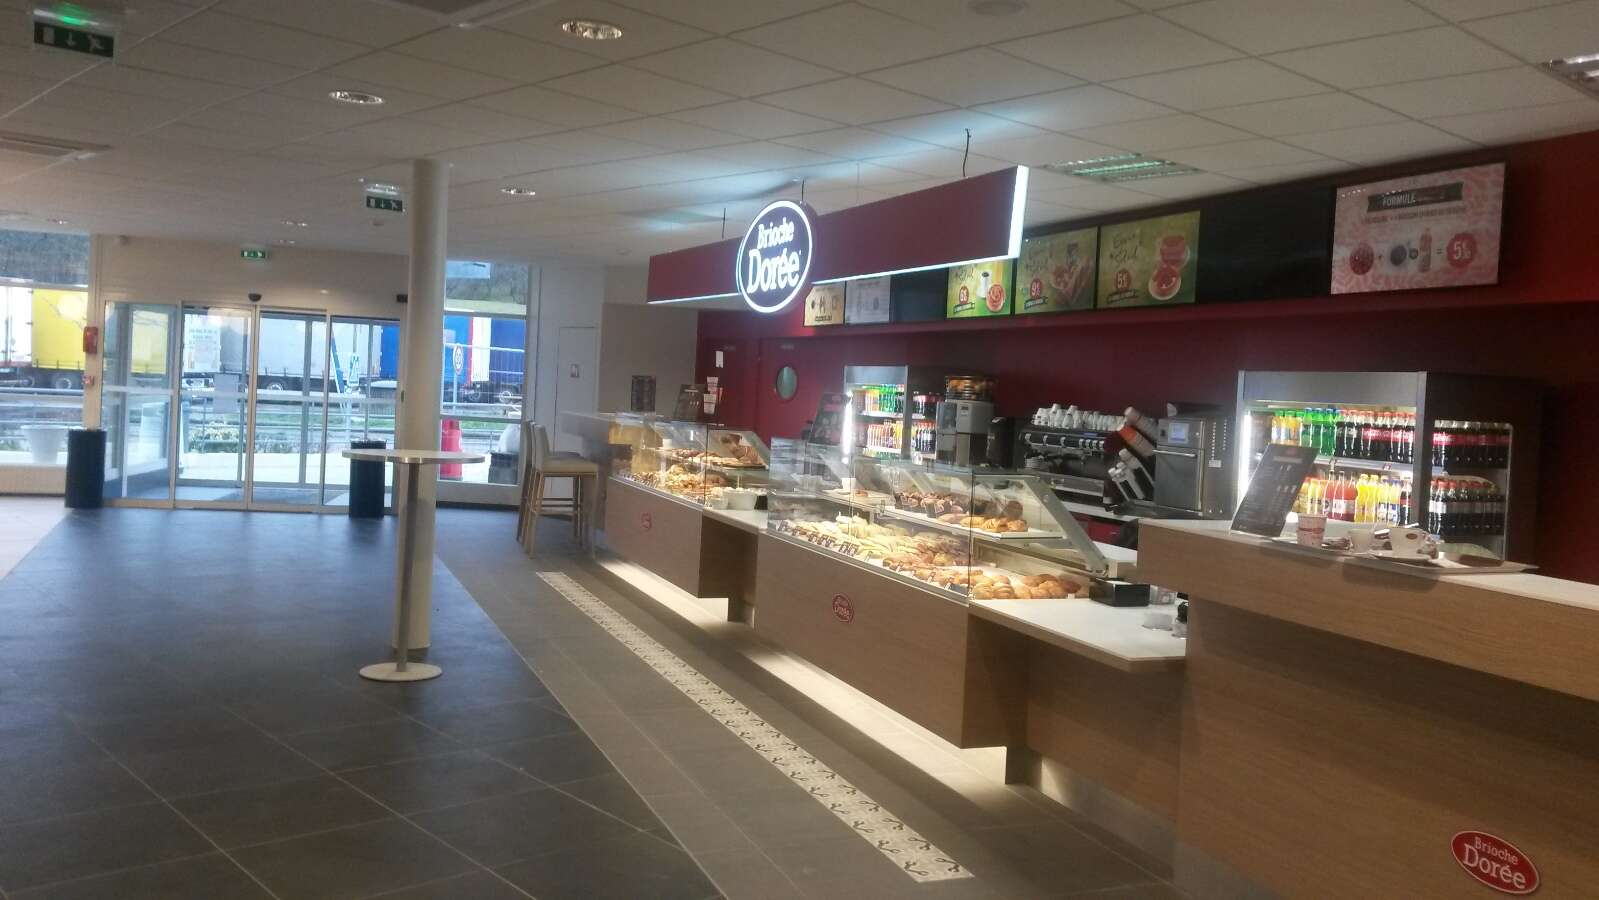 A new concept mix for the motorway service station of